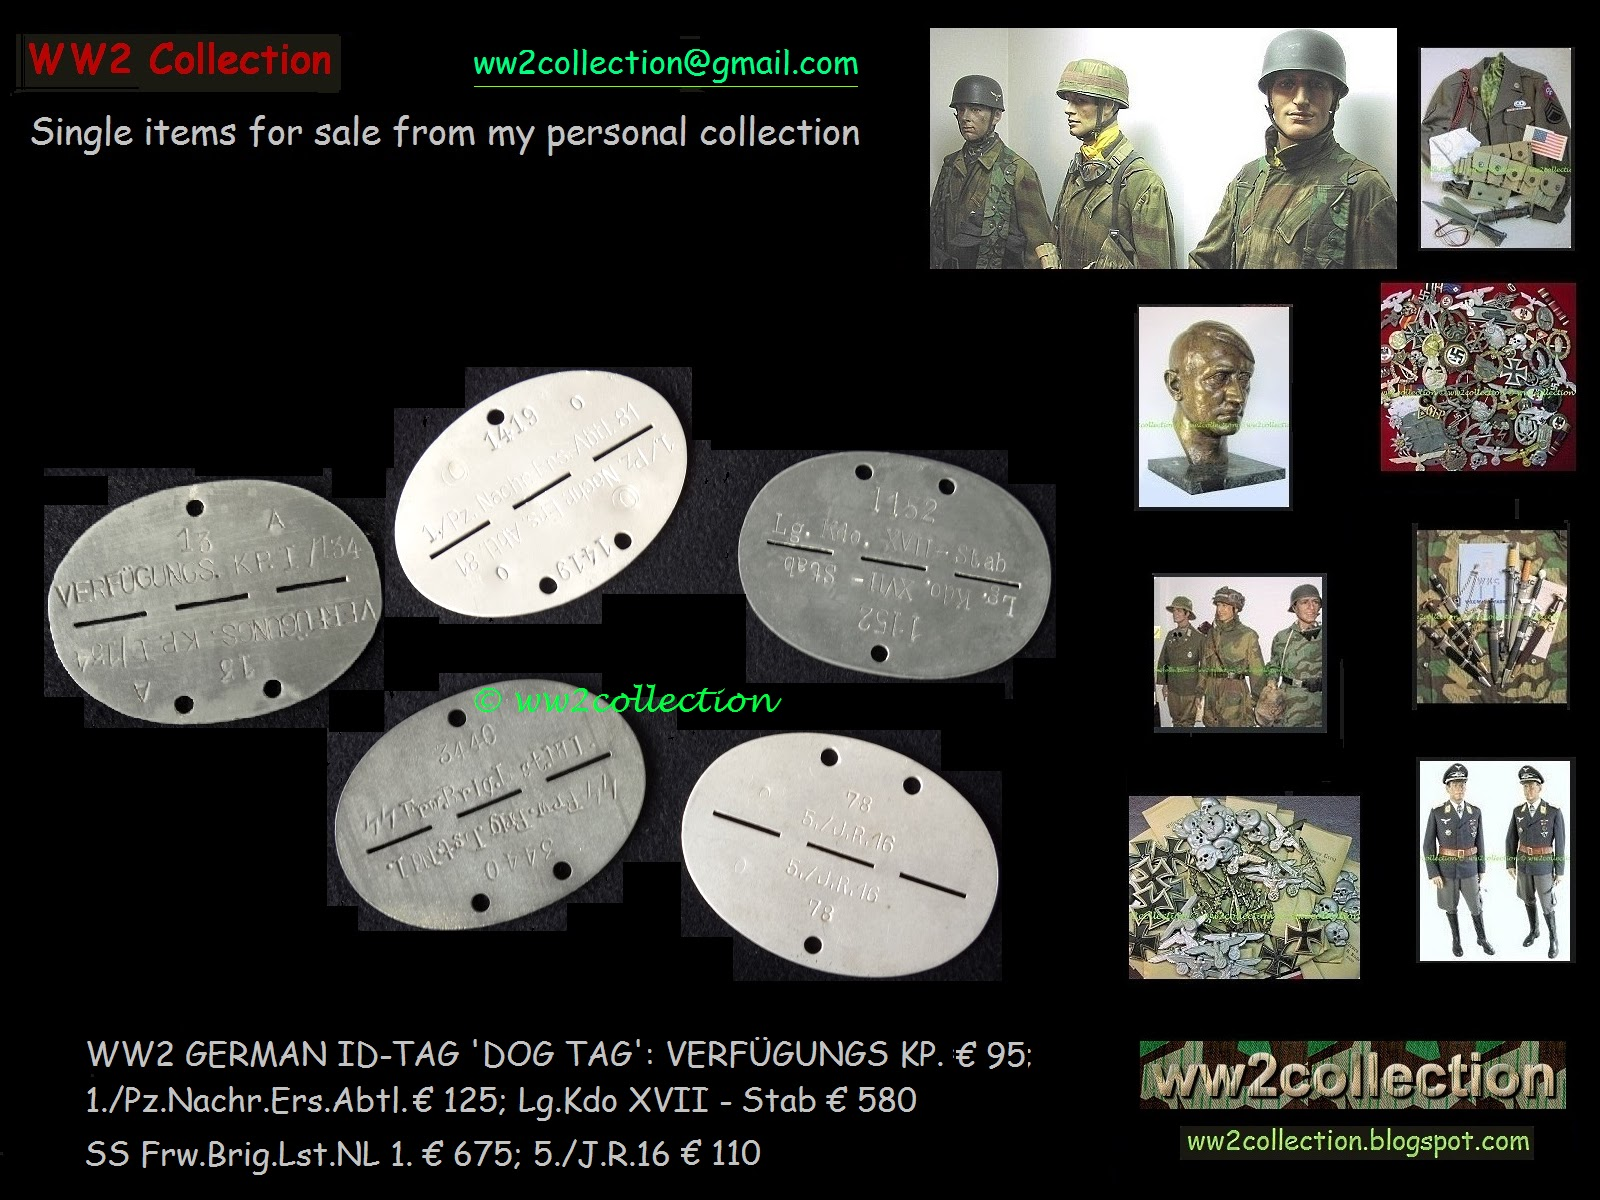 WW2 Collection Price List Of My Private Collection